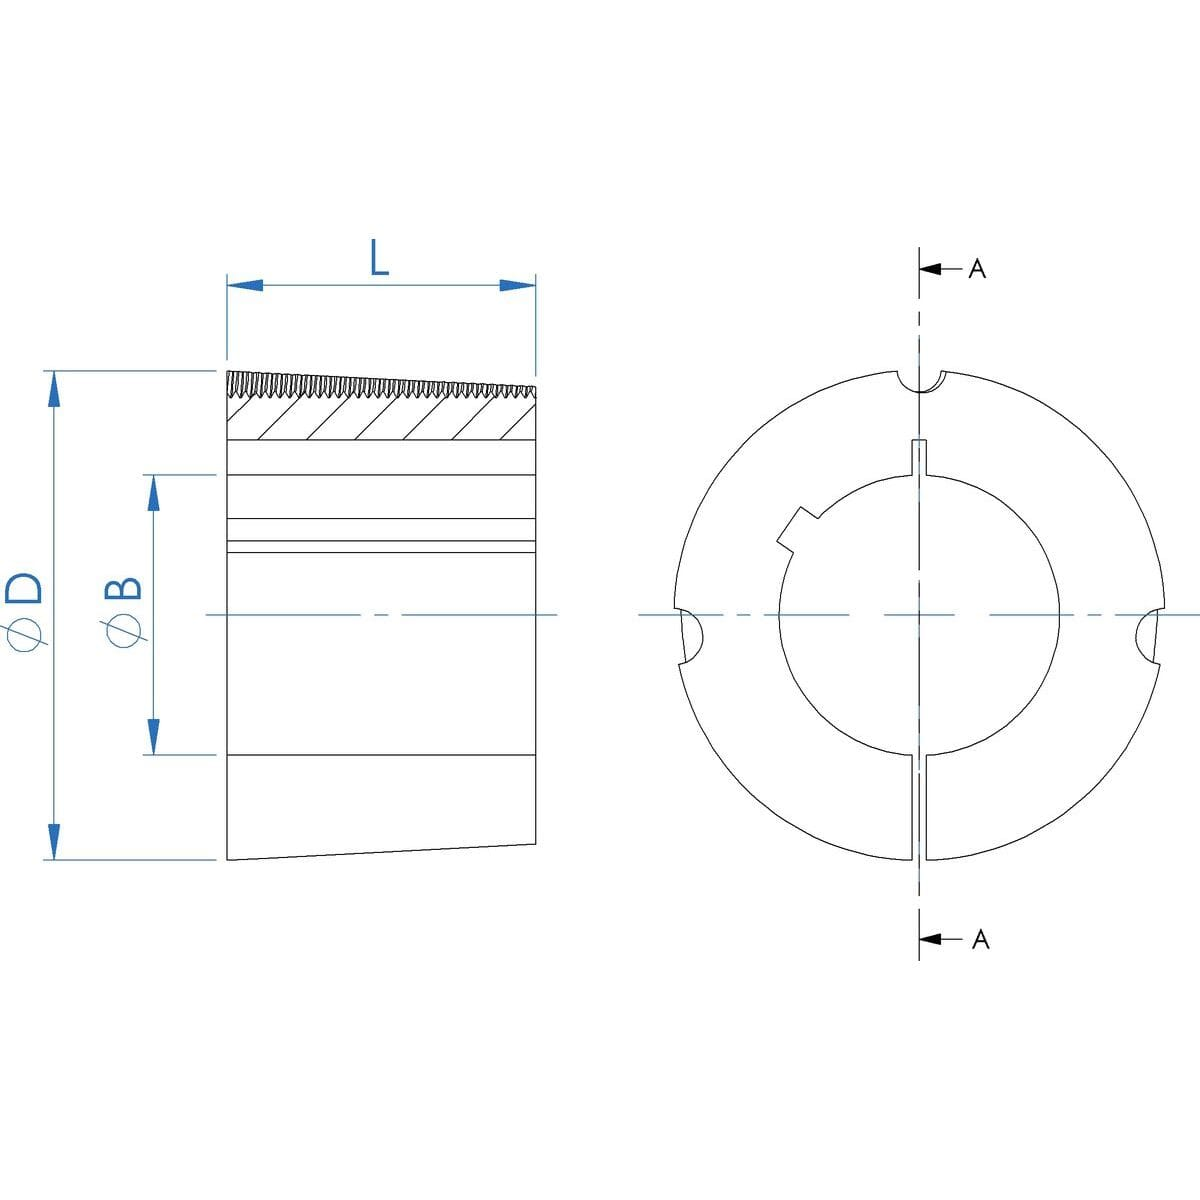 1610 Size with 15mm, Bore Taper Locking Bushes - 161015 Drawing